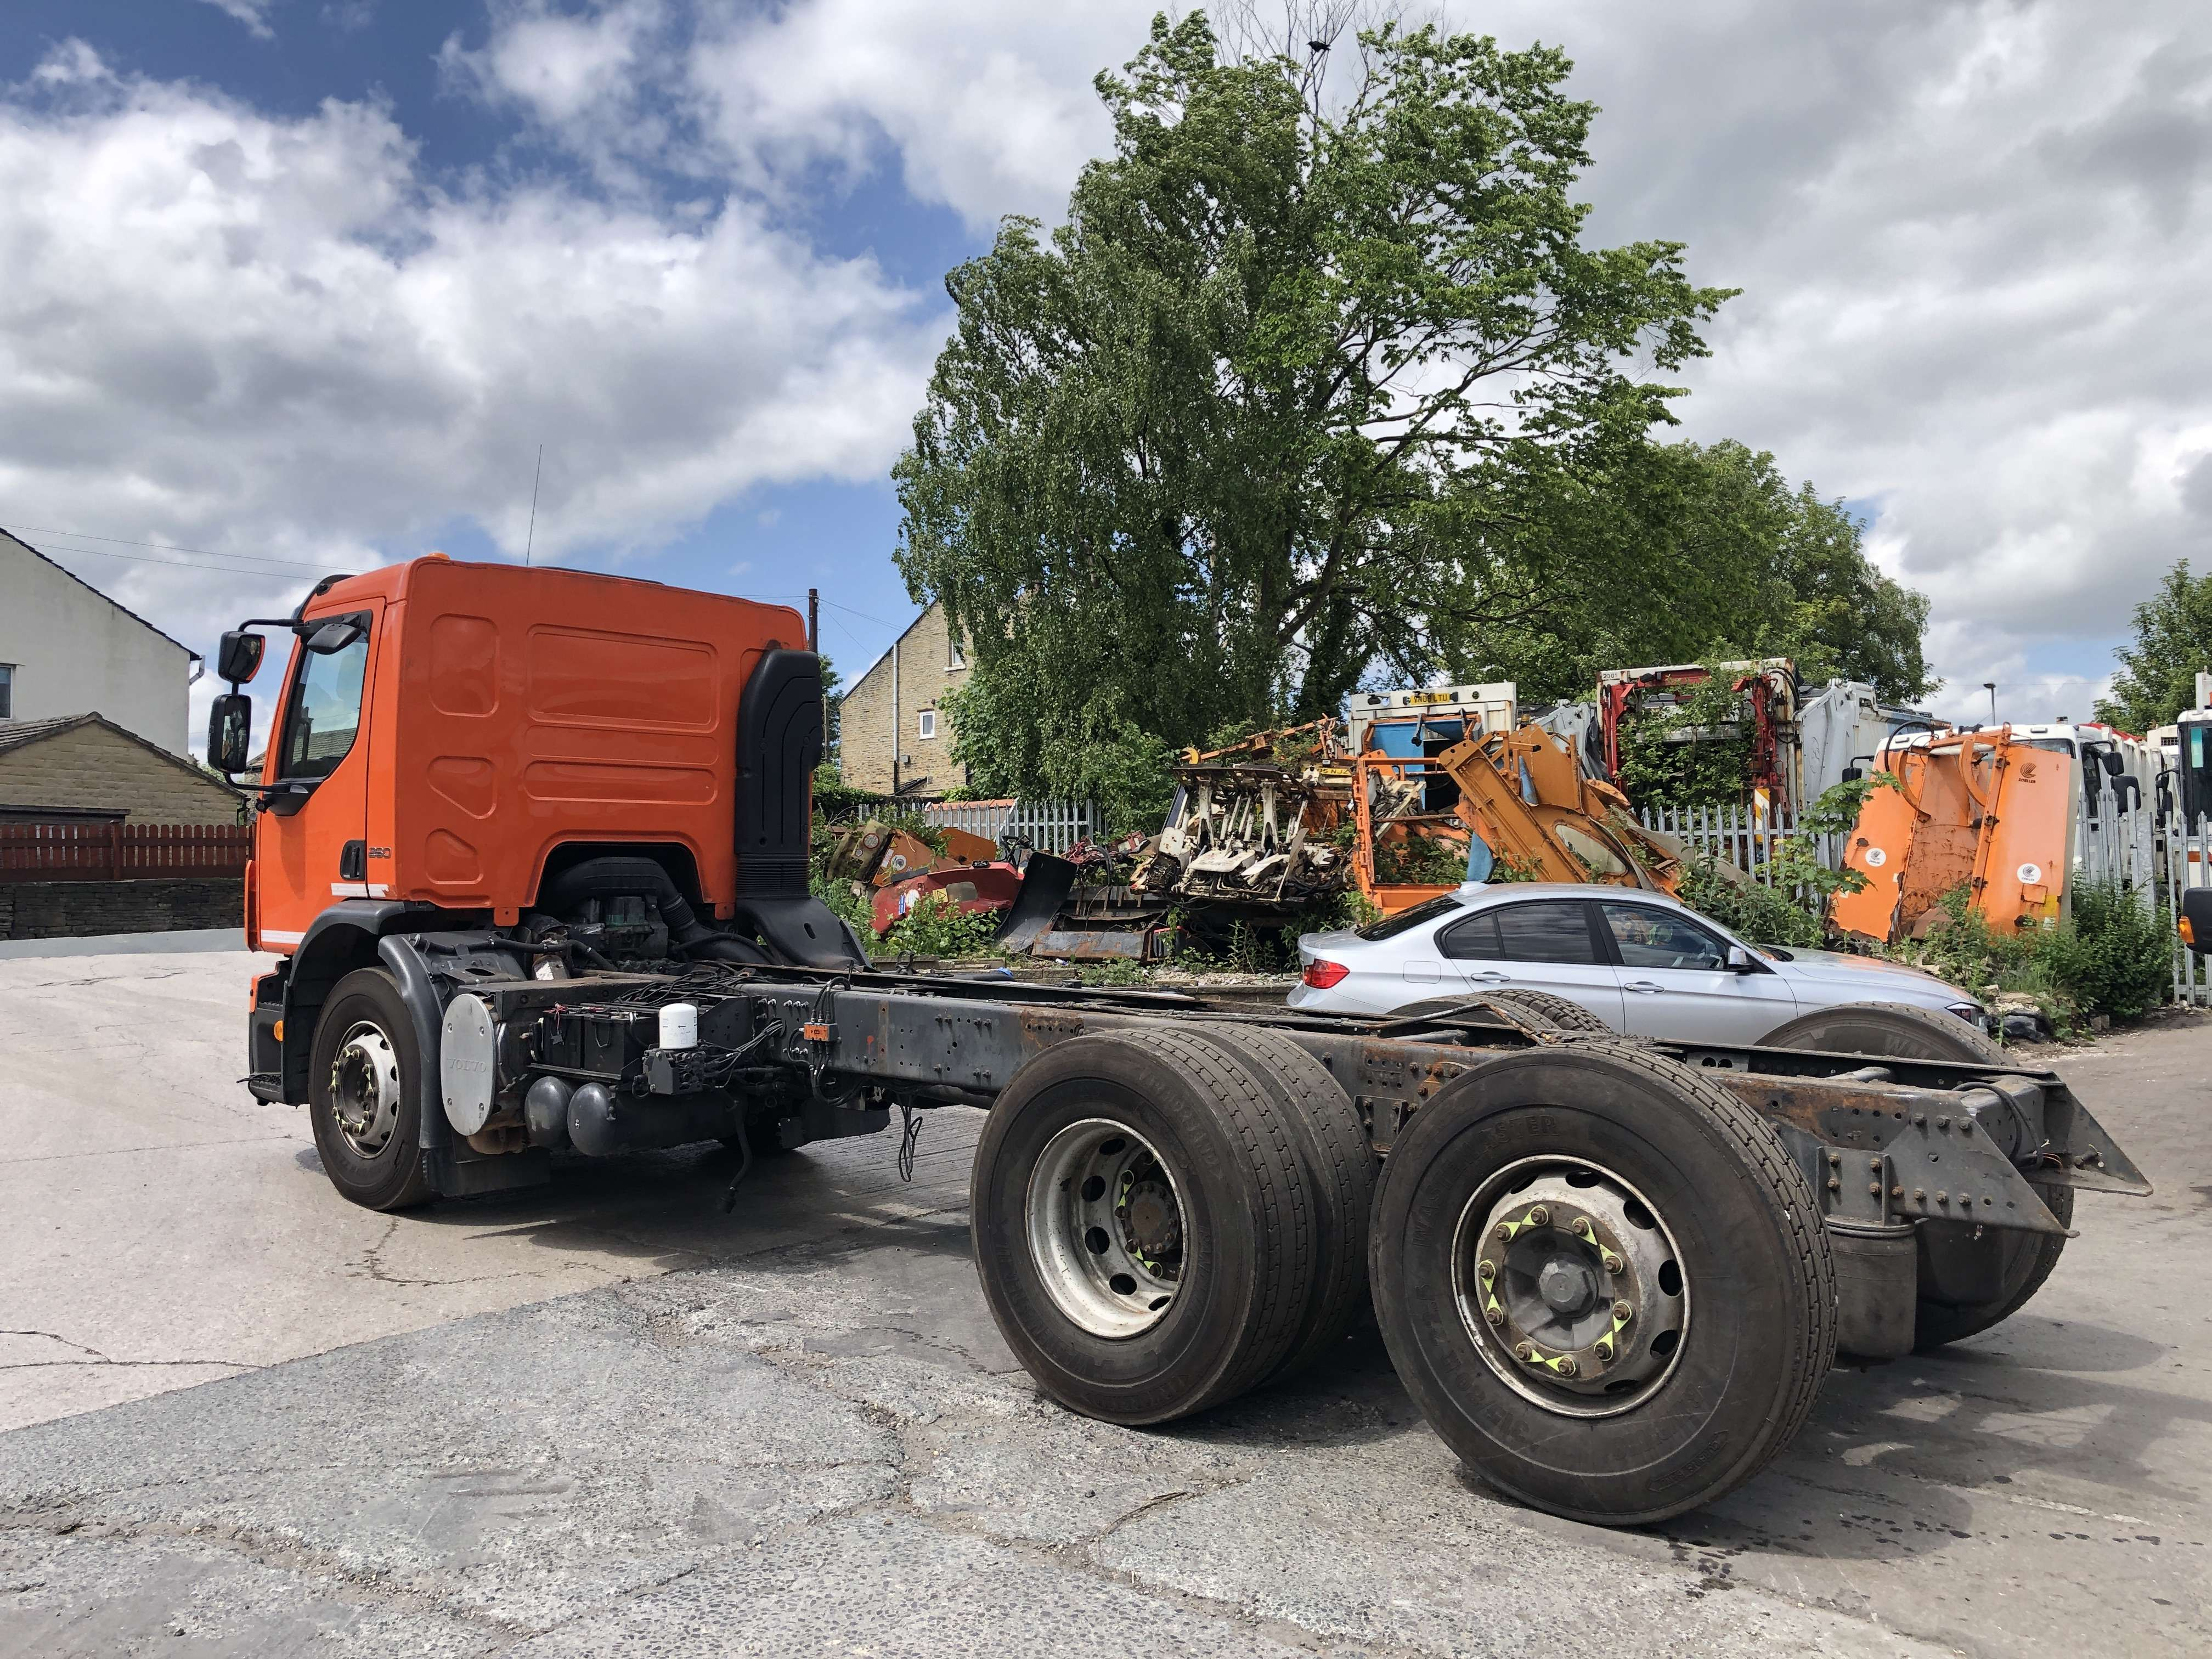 Volvo FE 260 6x2 rear steer chassis cab 2